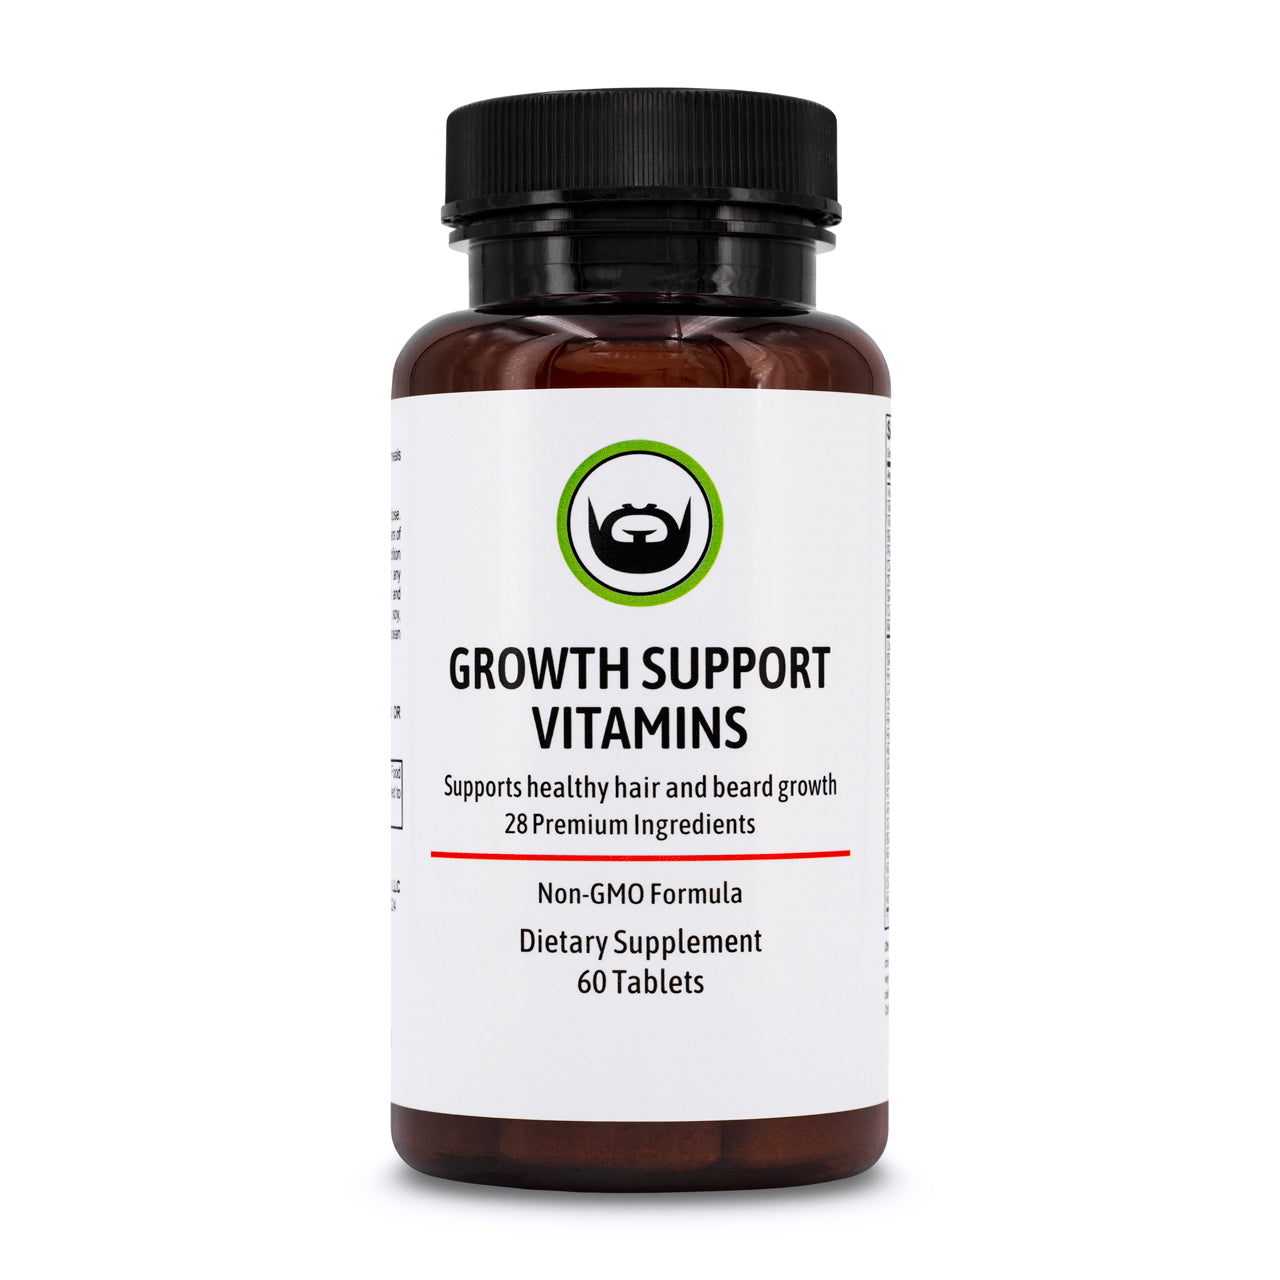 Growth Support Vitamins by Beard Organics